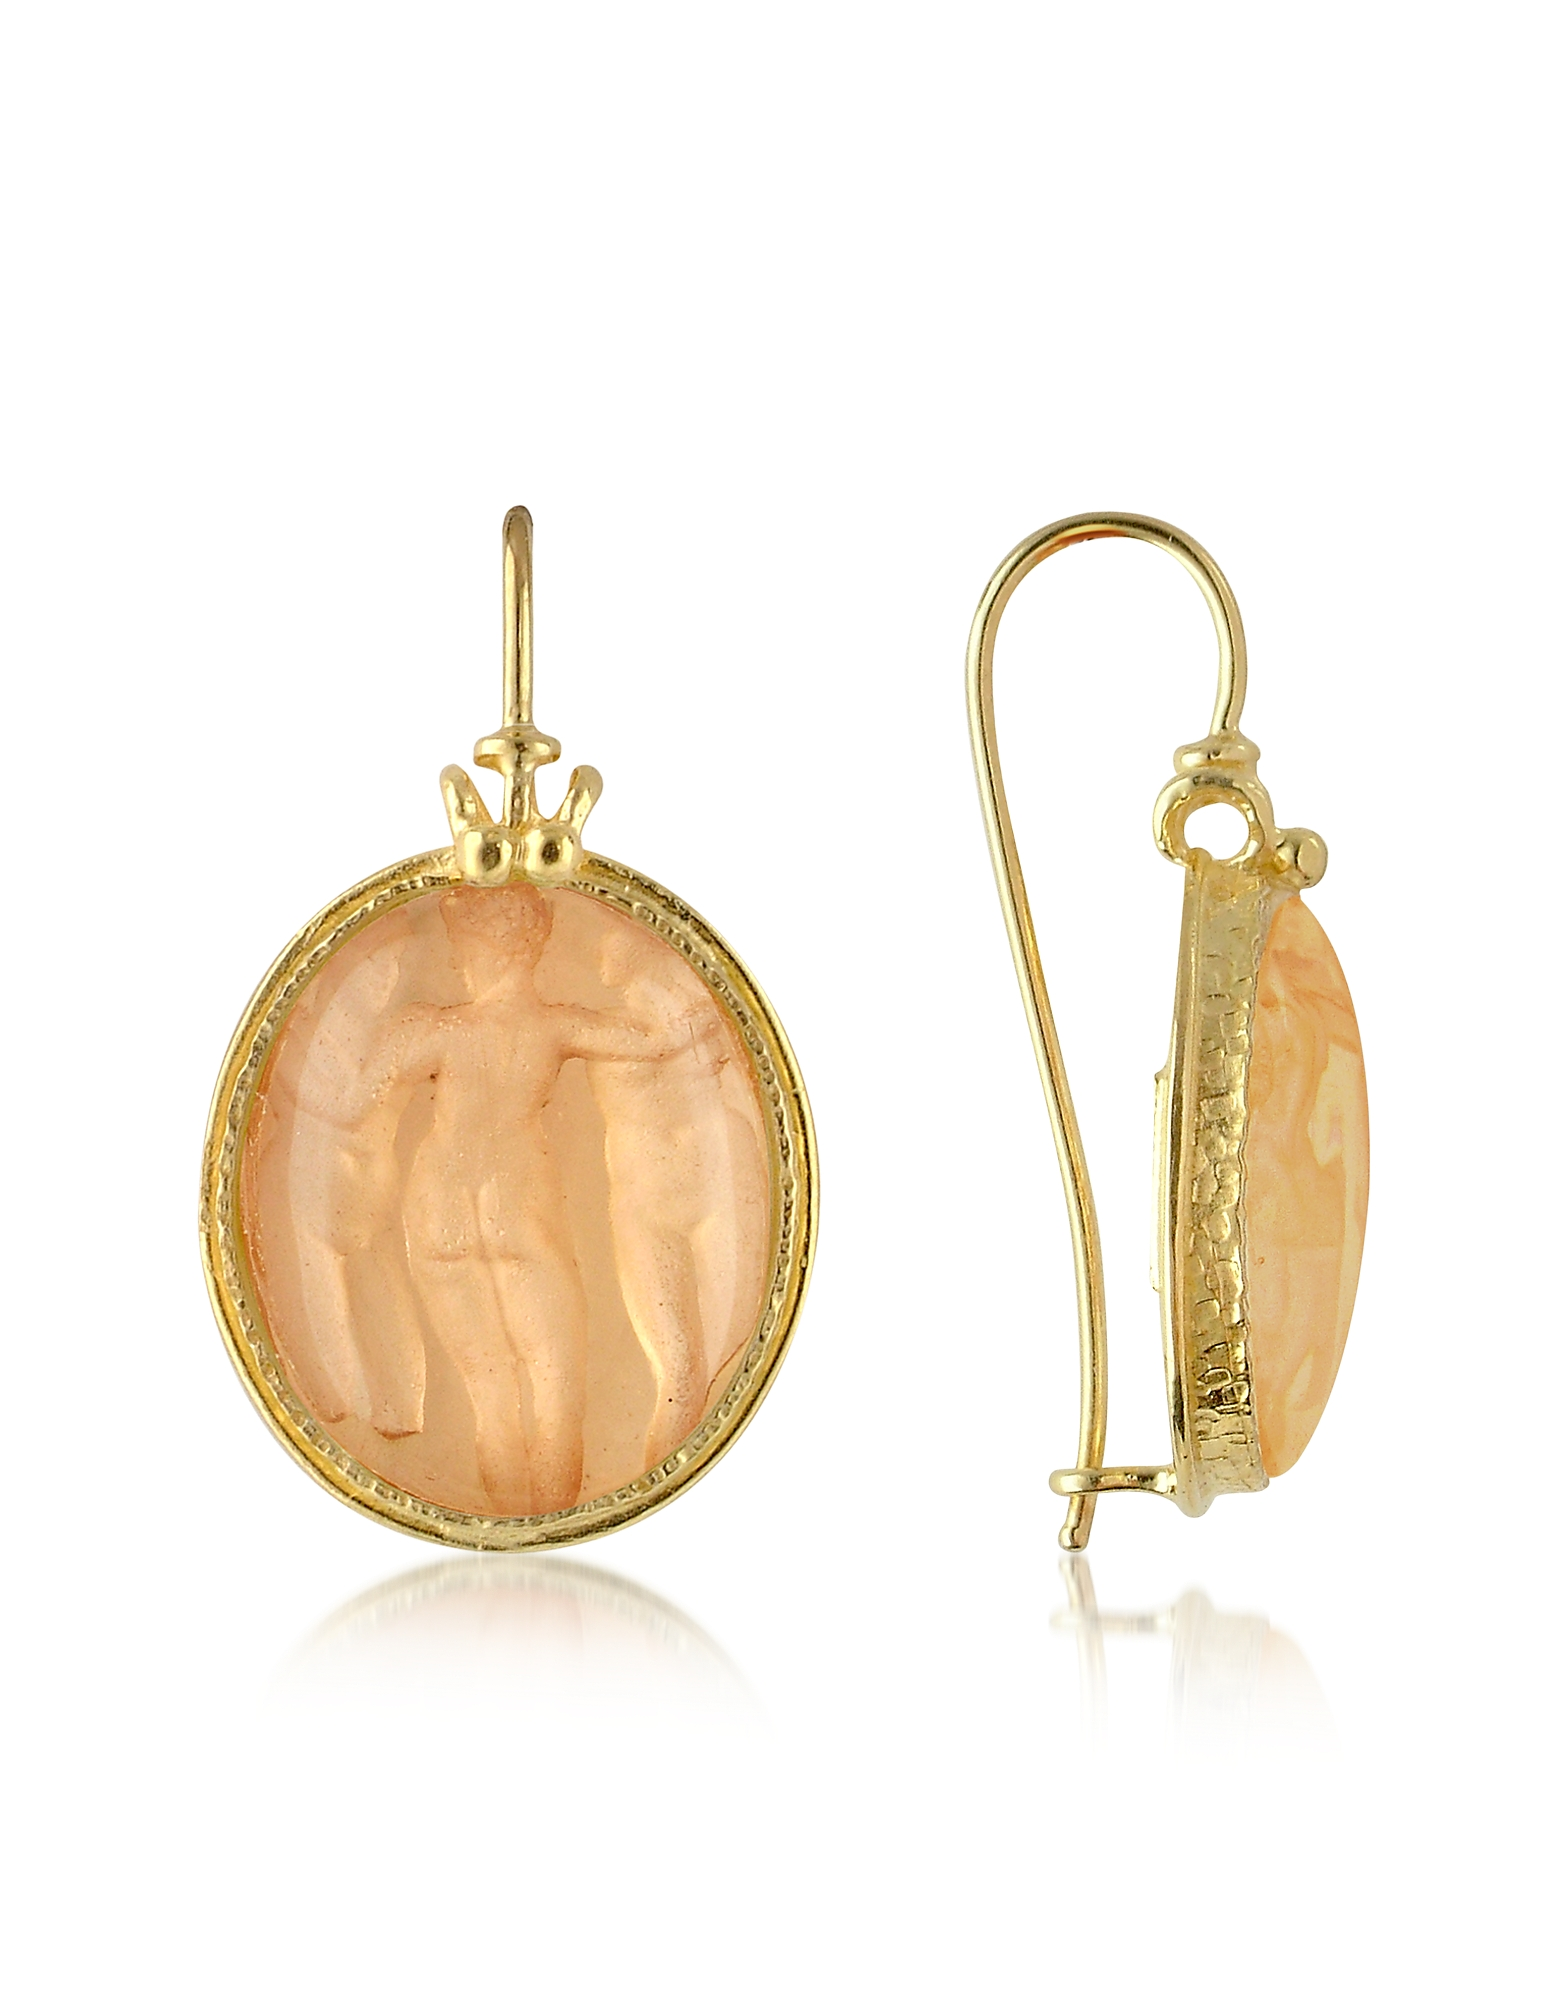 Tagliamonte Cameo, Three Graces - 18K Gold Mother of Pearl Cameo Earrings